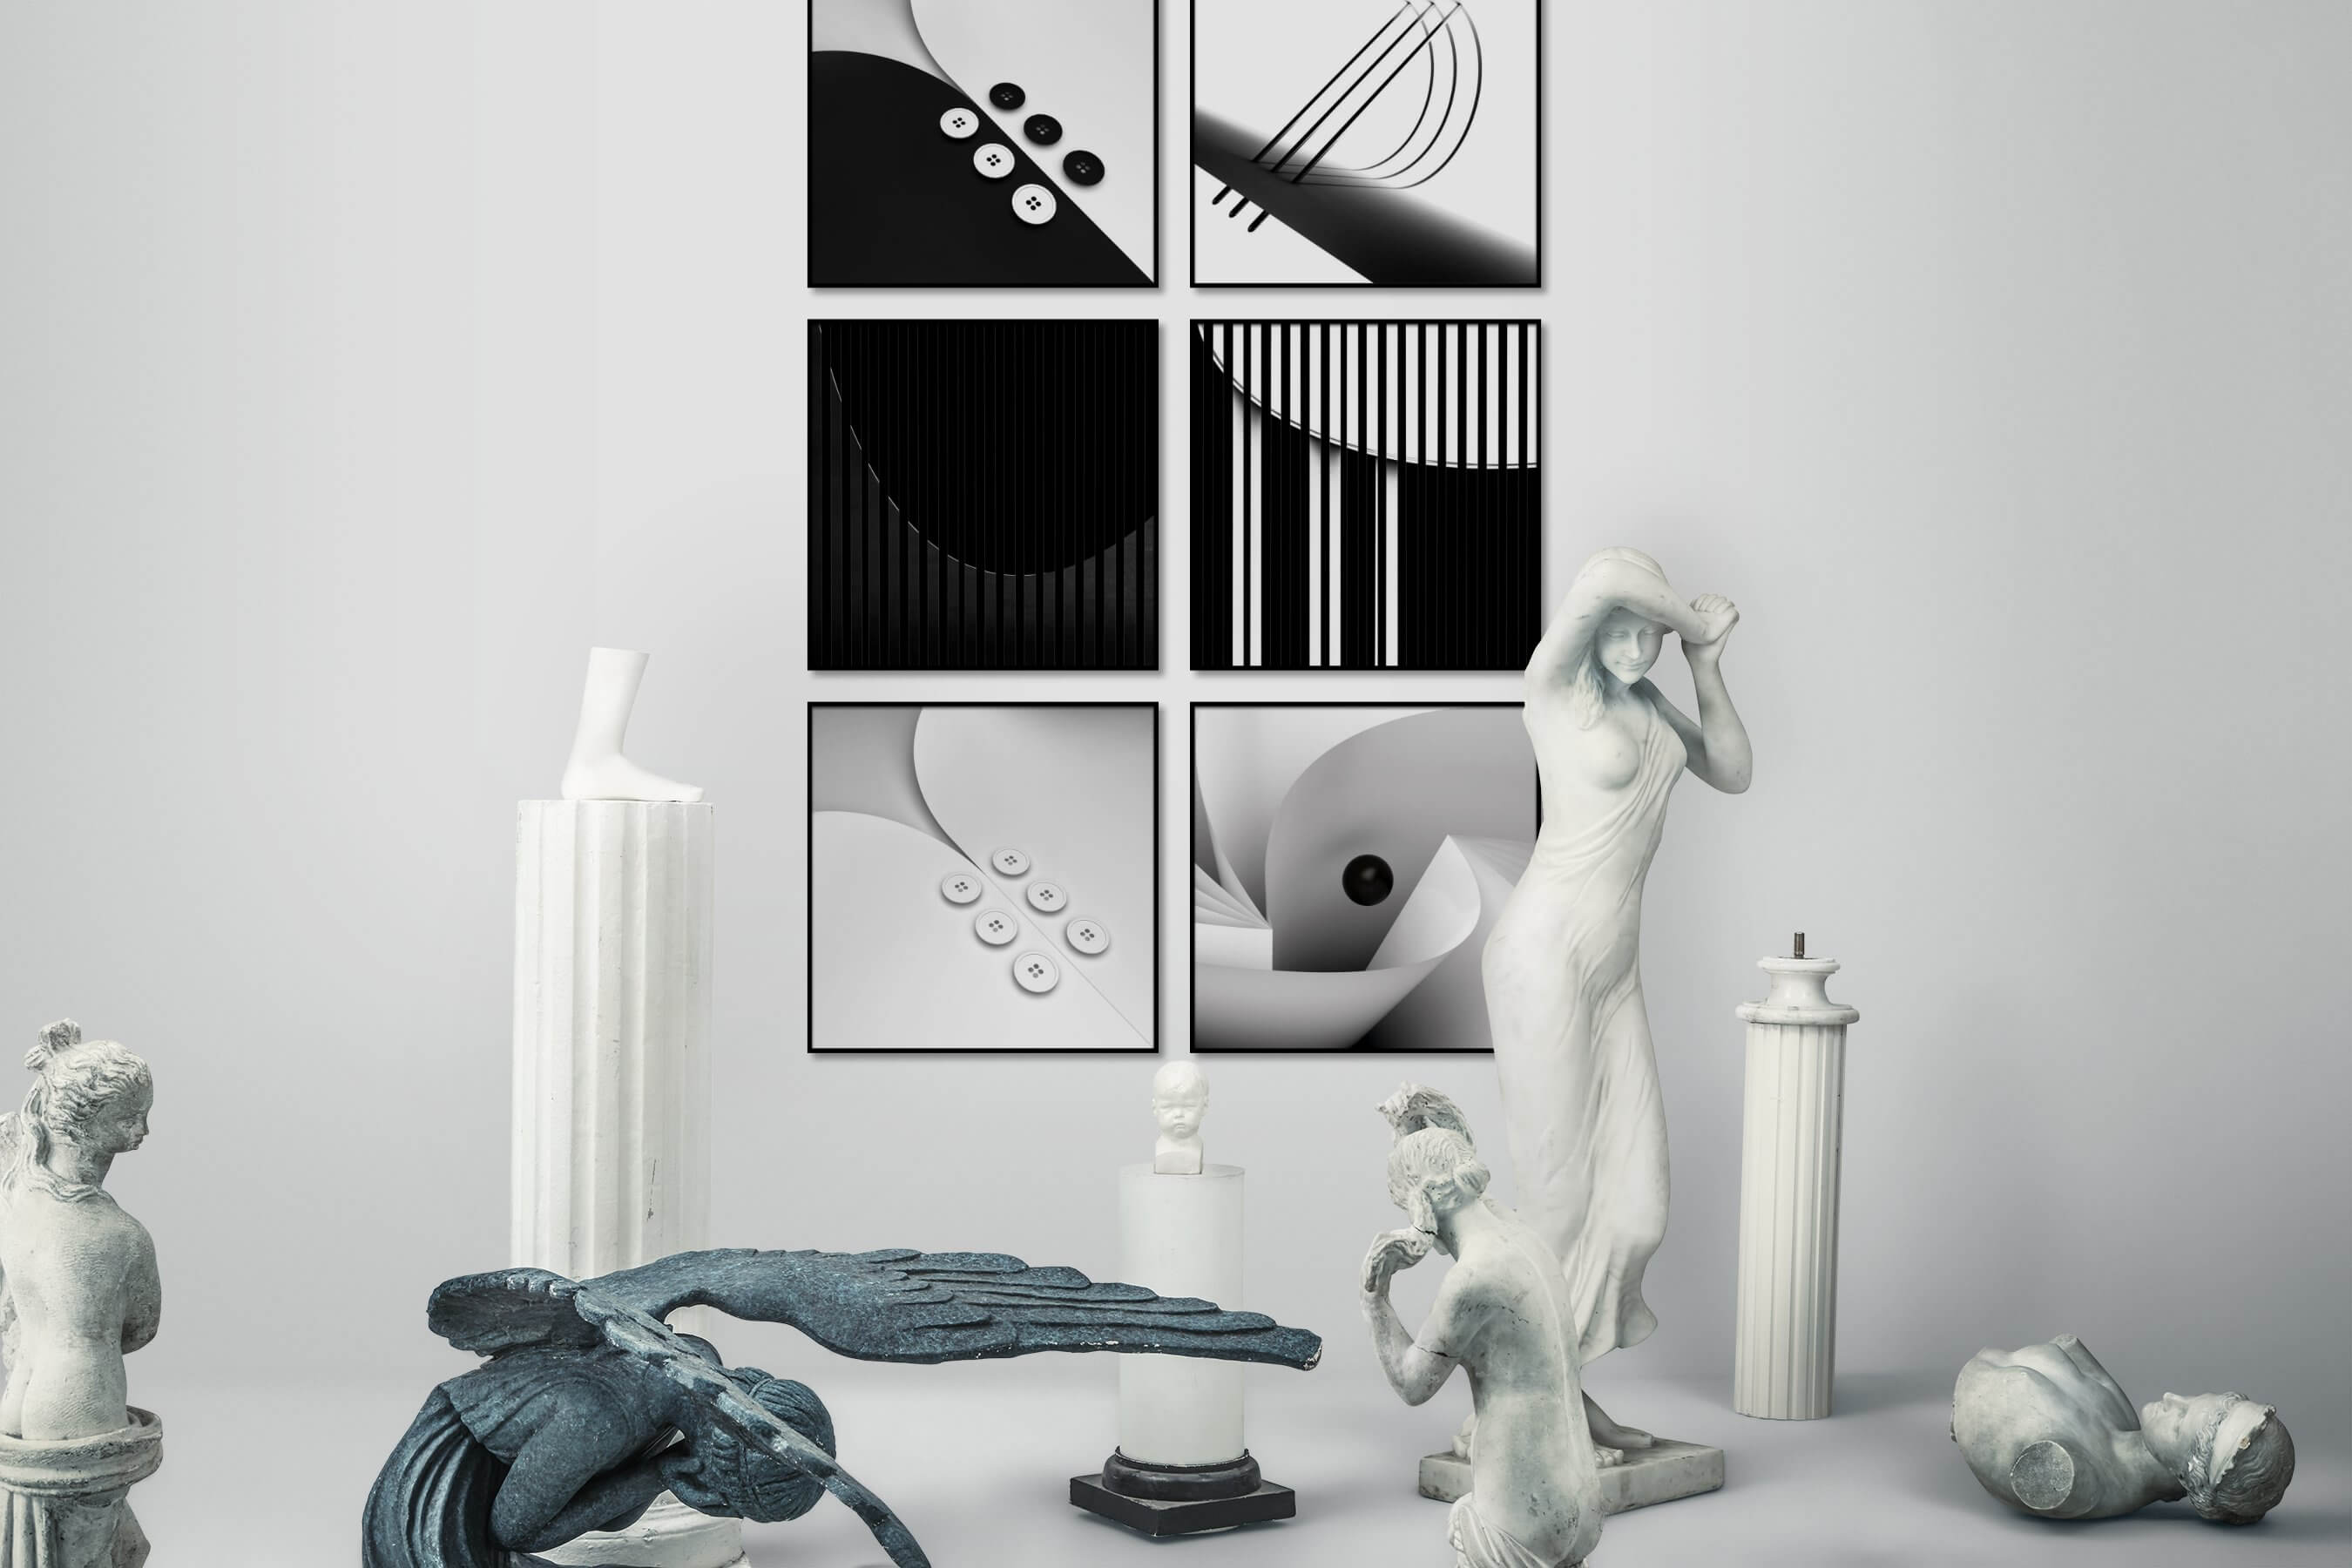 Gallery wall idea with six framed pictures arranged on a wall depicting Black & White, For the Minimalist, Bright Tones, Dark Tones, and For the Moderate